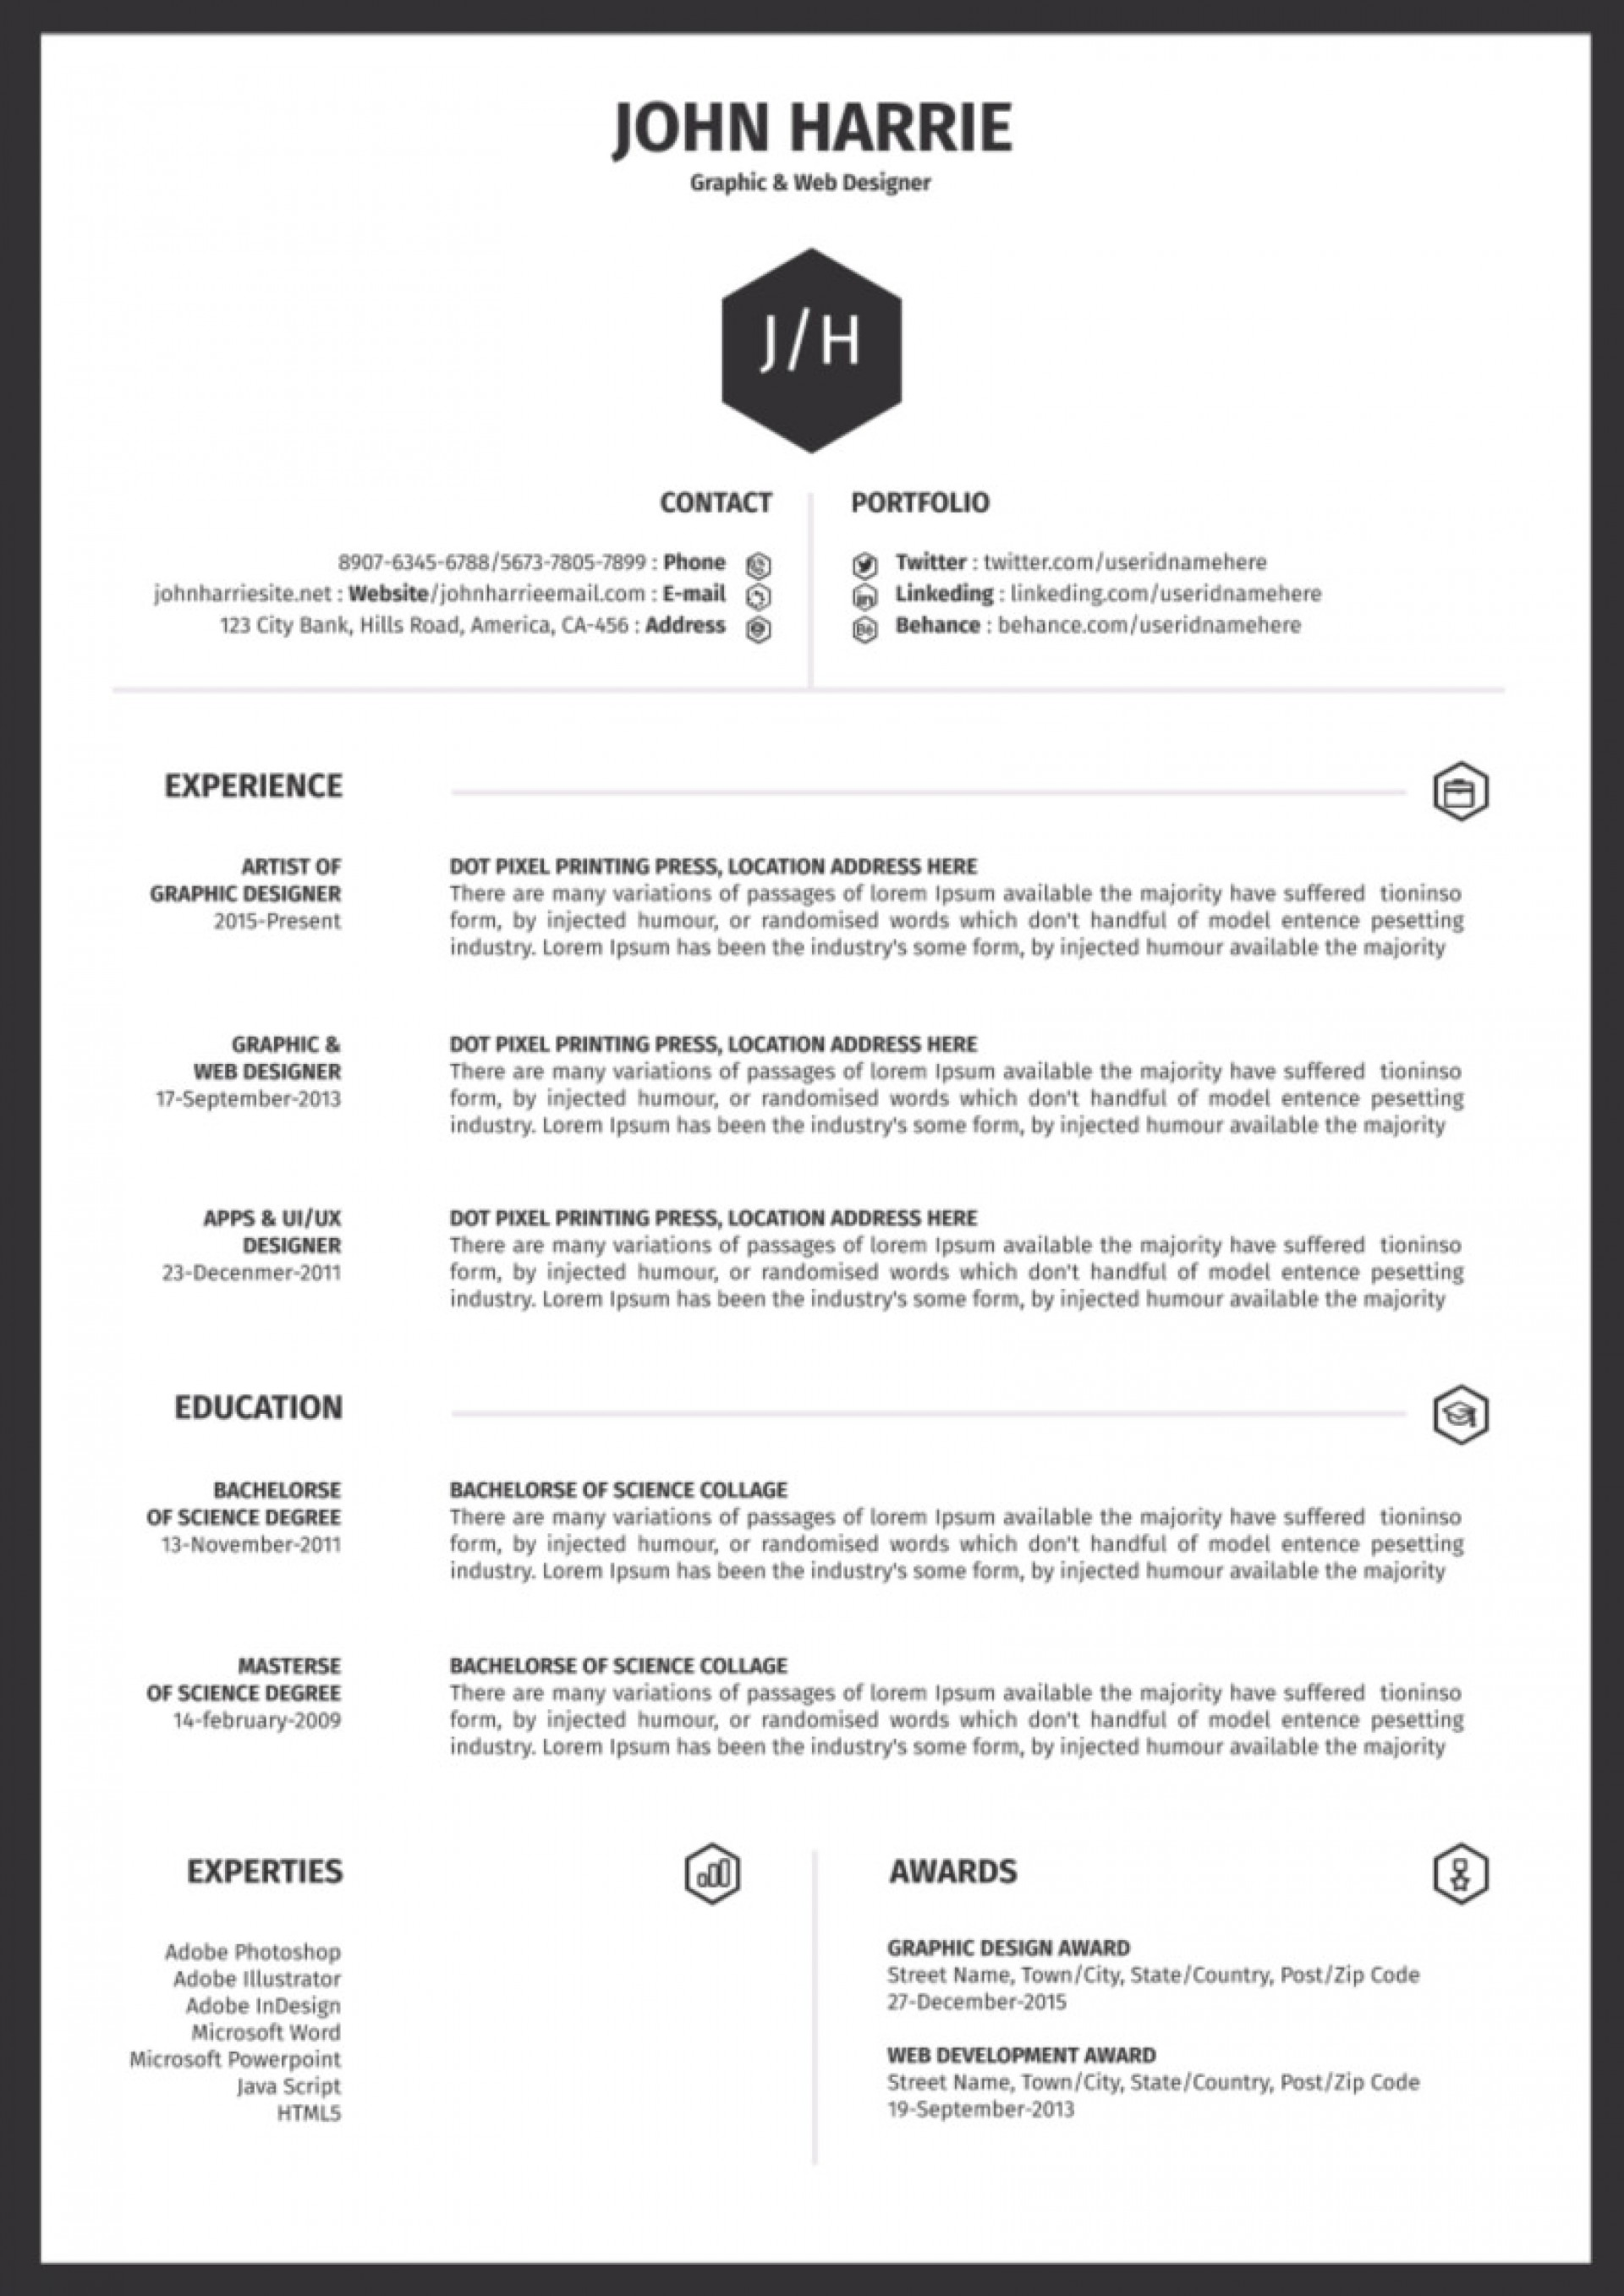 009 Frightening 1 Page Resume Template Sample  Templates One Basic Word Free Html Download1920